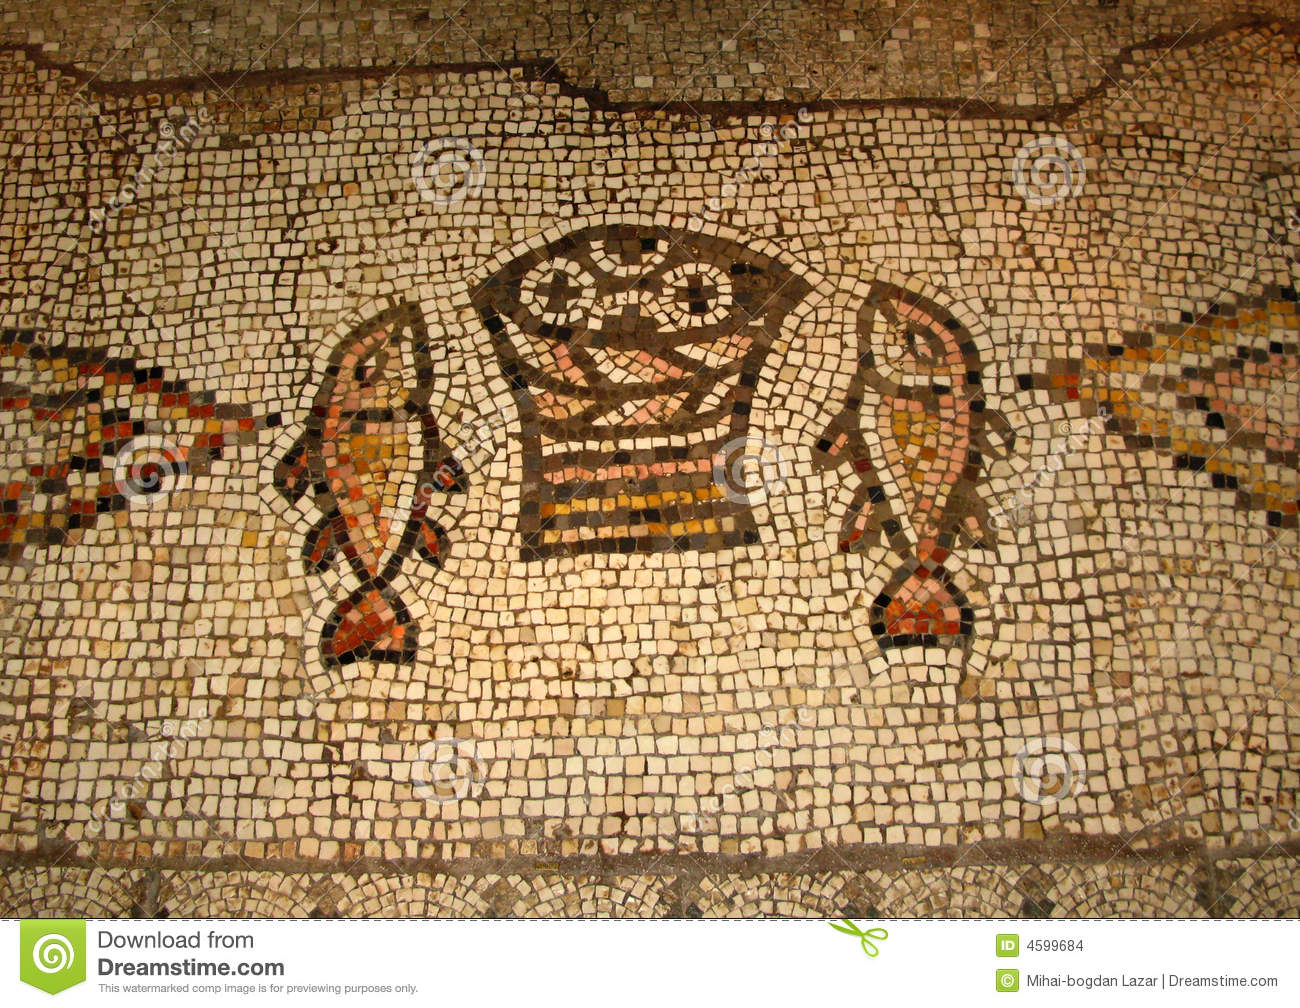 http://www.dreamstime.com/stock-images-multiplication-mosaic-tabgha-israel-image4599684